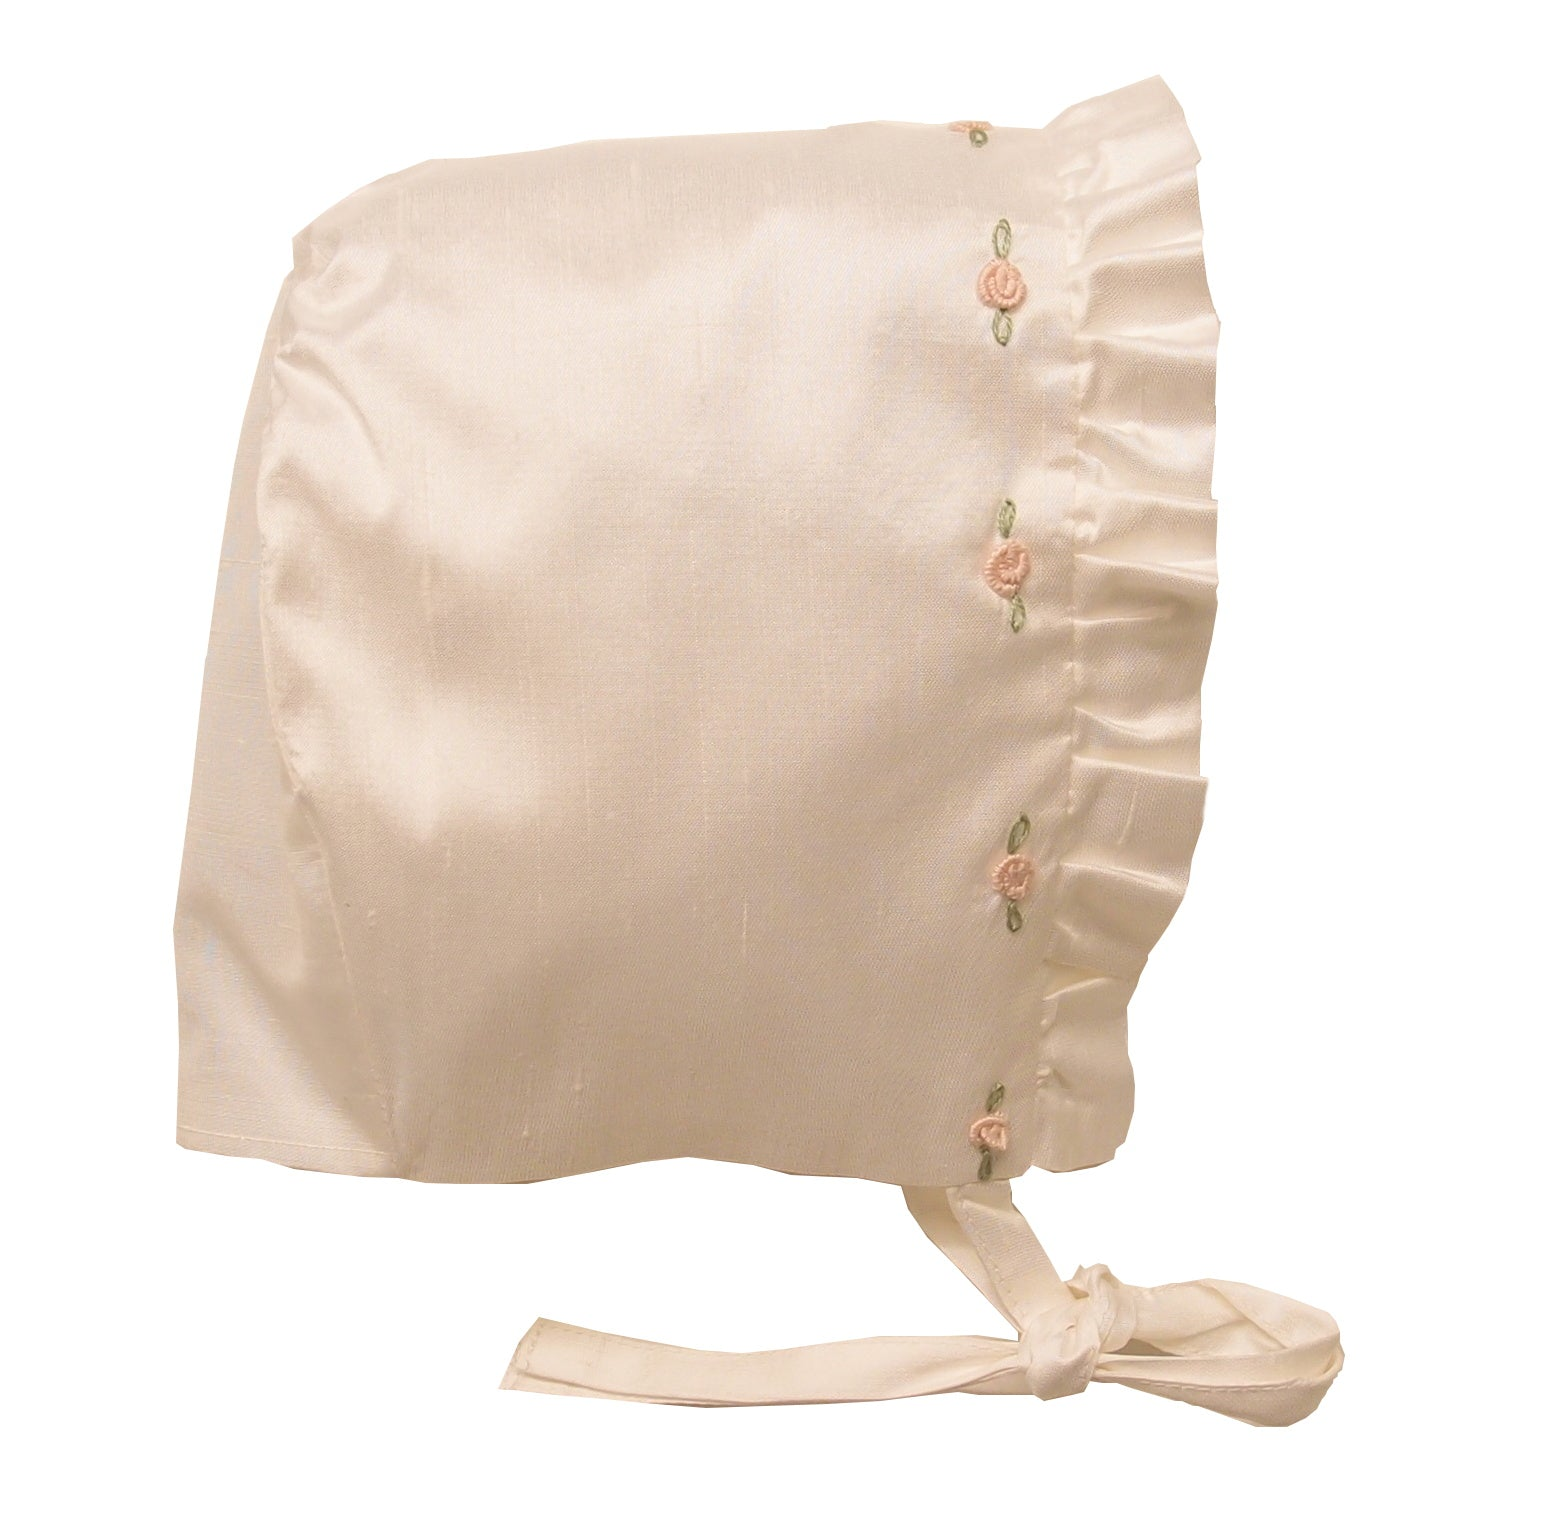 Sue Hill silk christening bonnet for baby girl Rosa